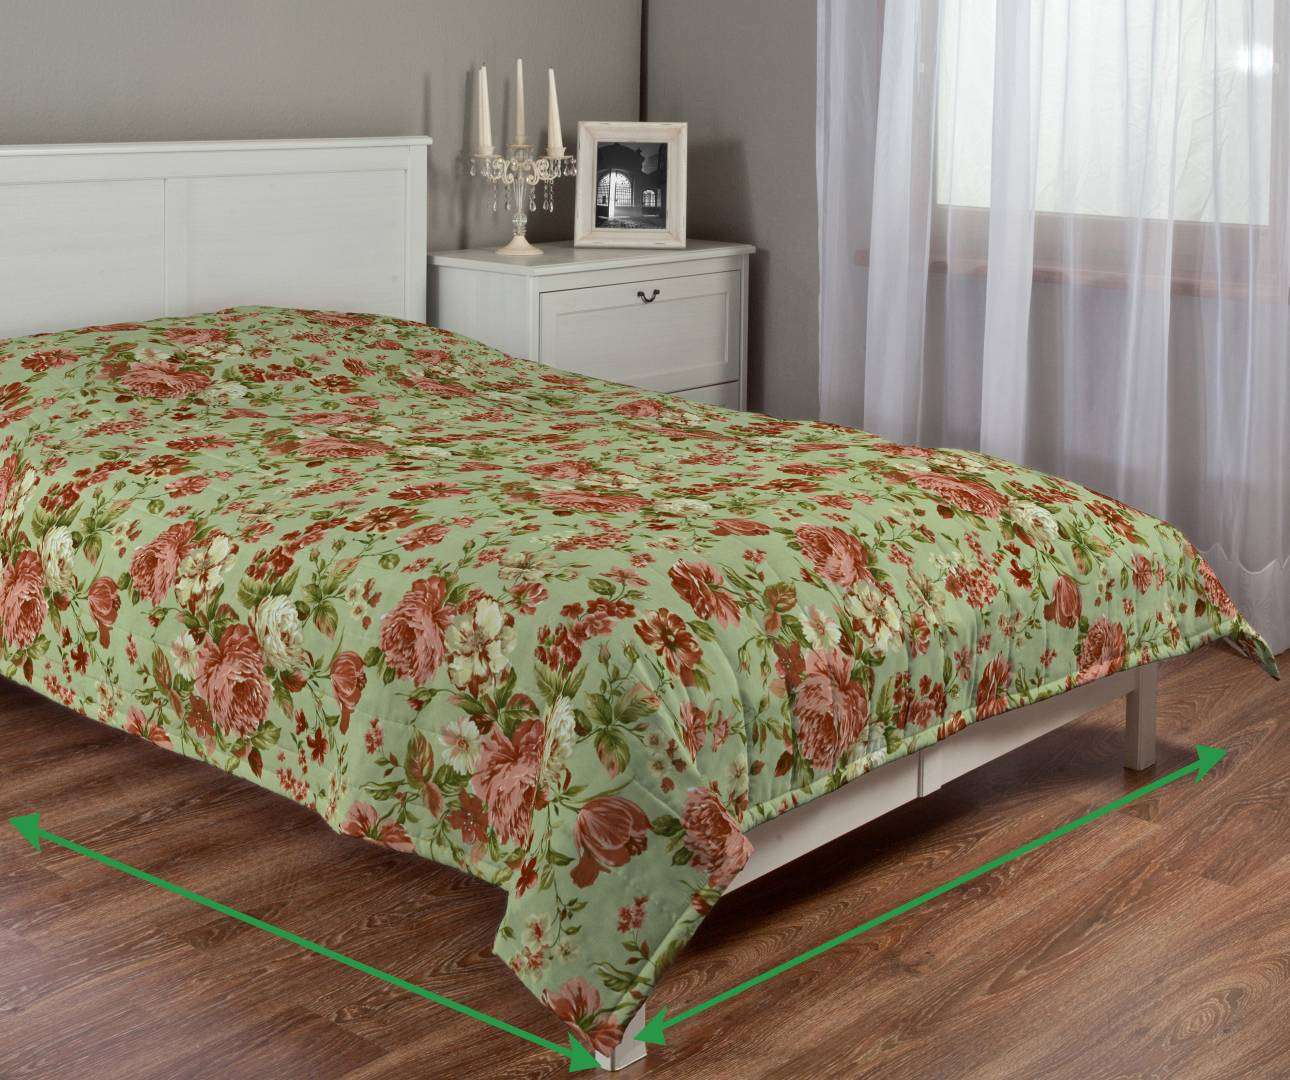 Quilted throw (vertical quilt pattern) in collection Flowers, fabric: 311-06